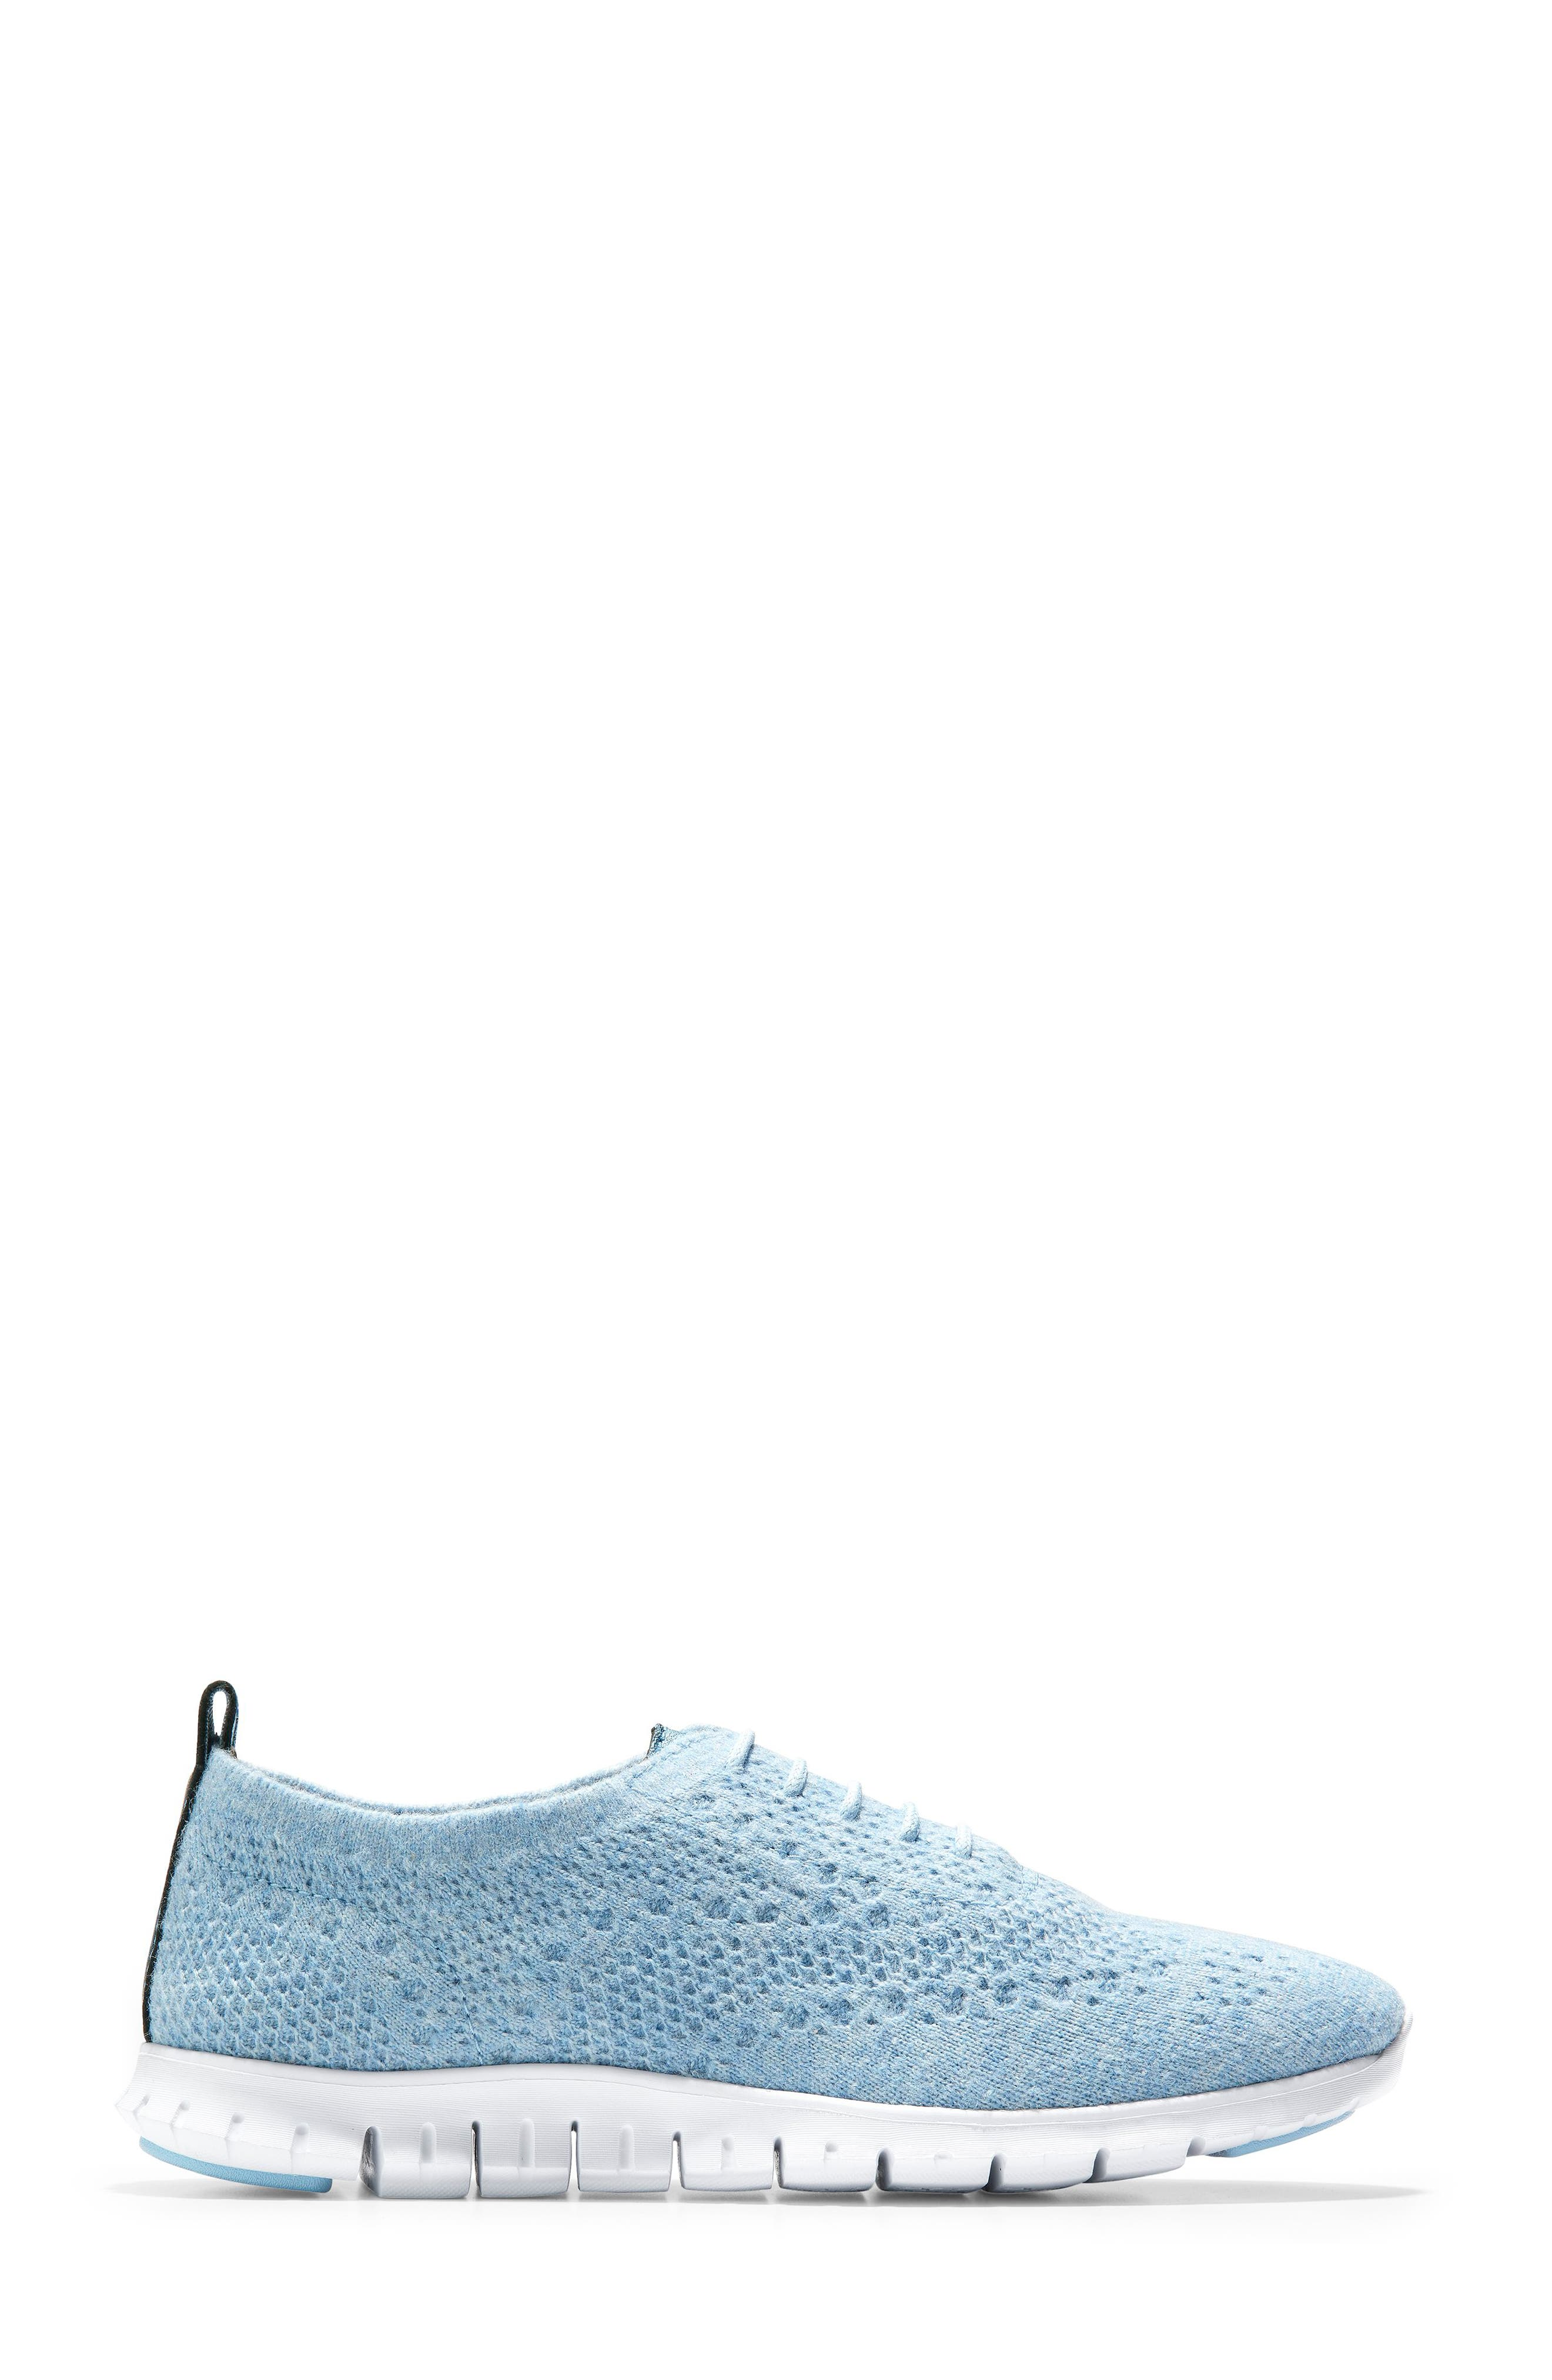 COLE HAAN,                             ZeroGrand Stitchlite Wool Flat,                             Alternate thumbnail 3, color,                             CHAMBRAY BLUE FABRIC